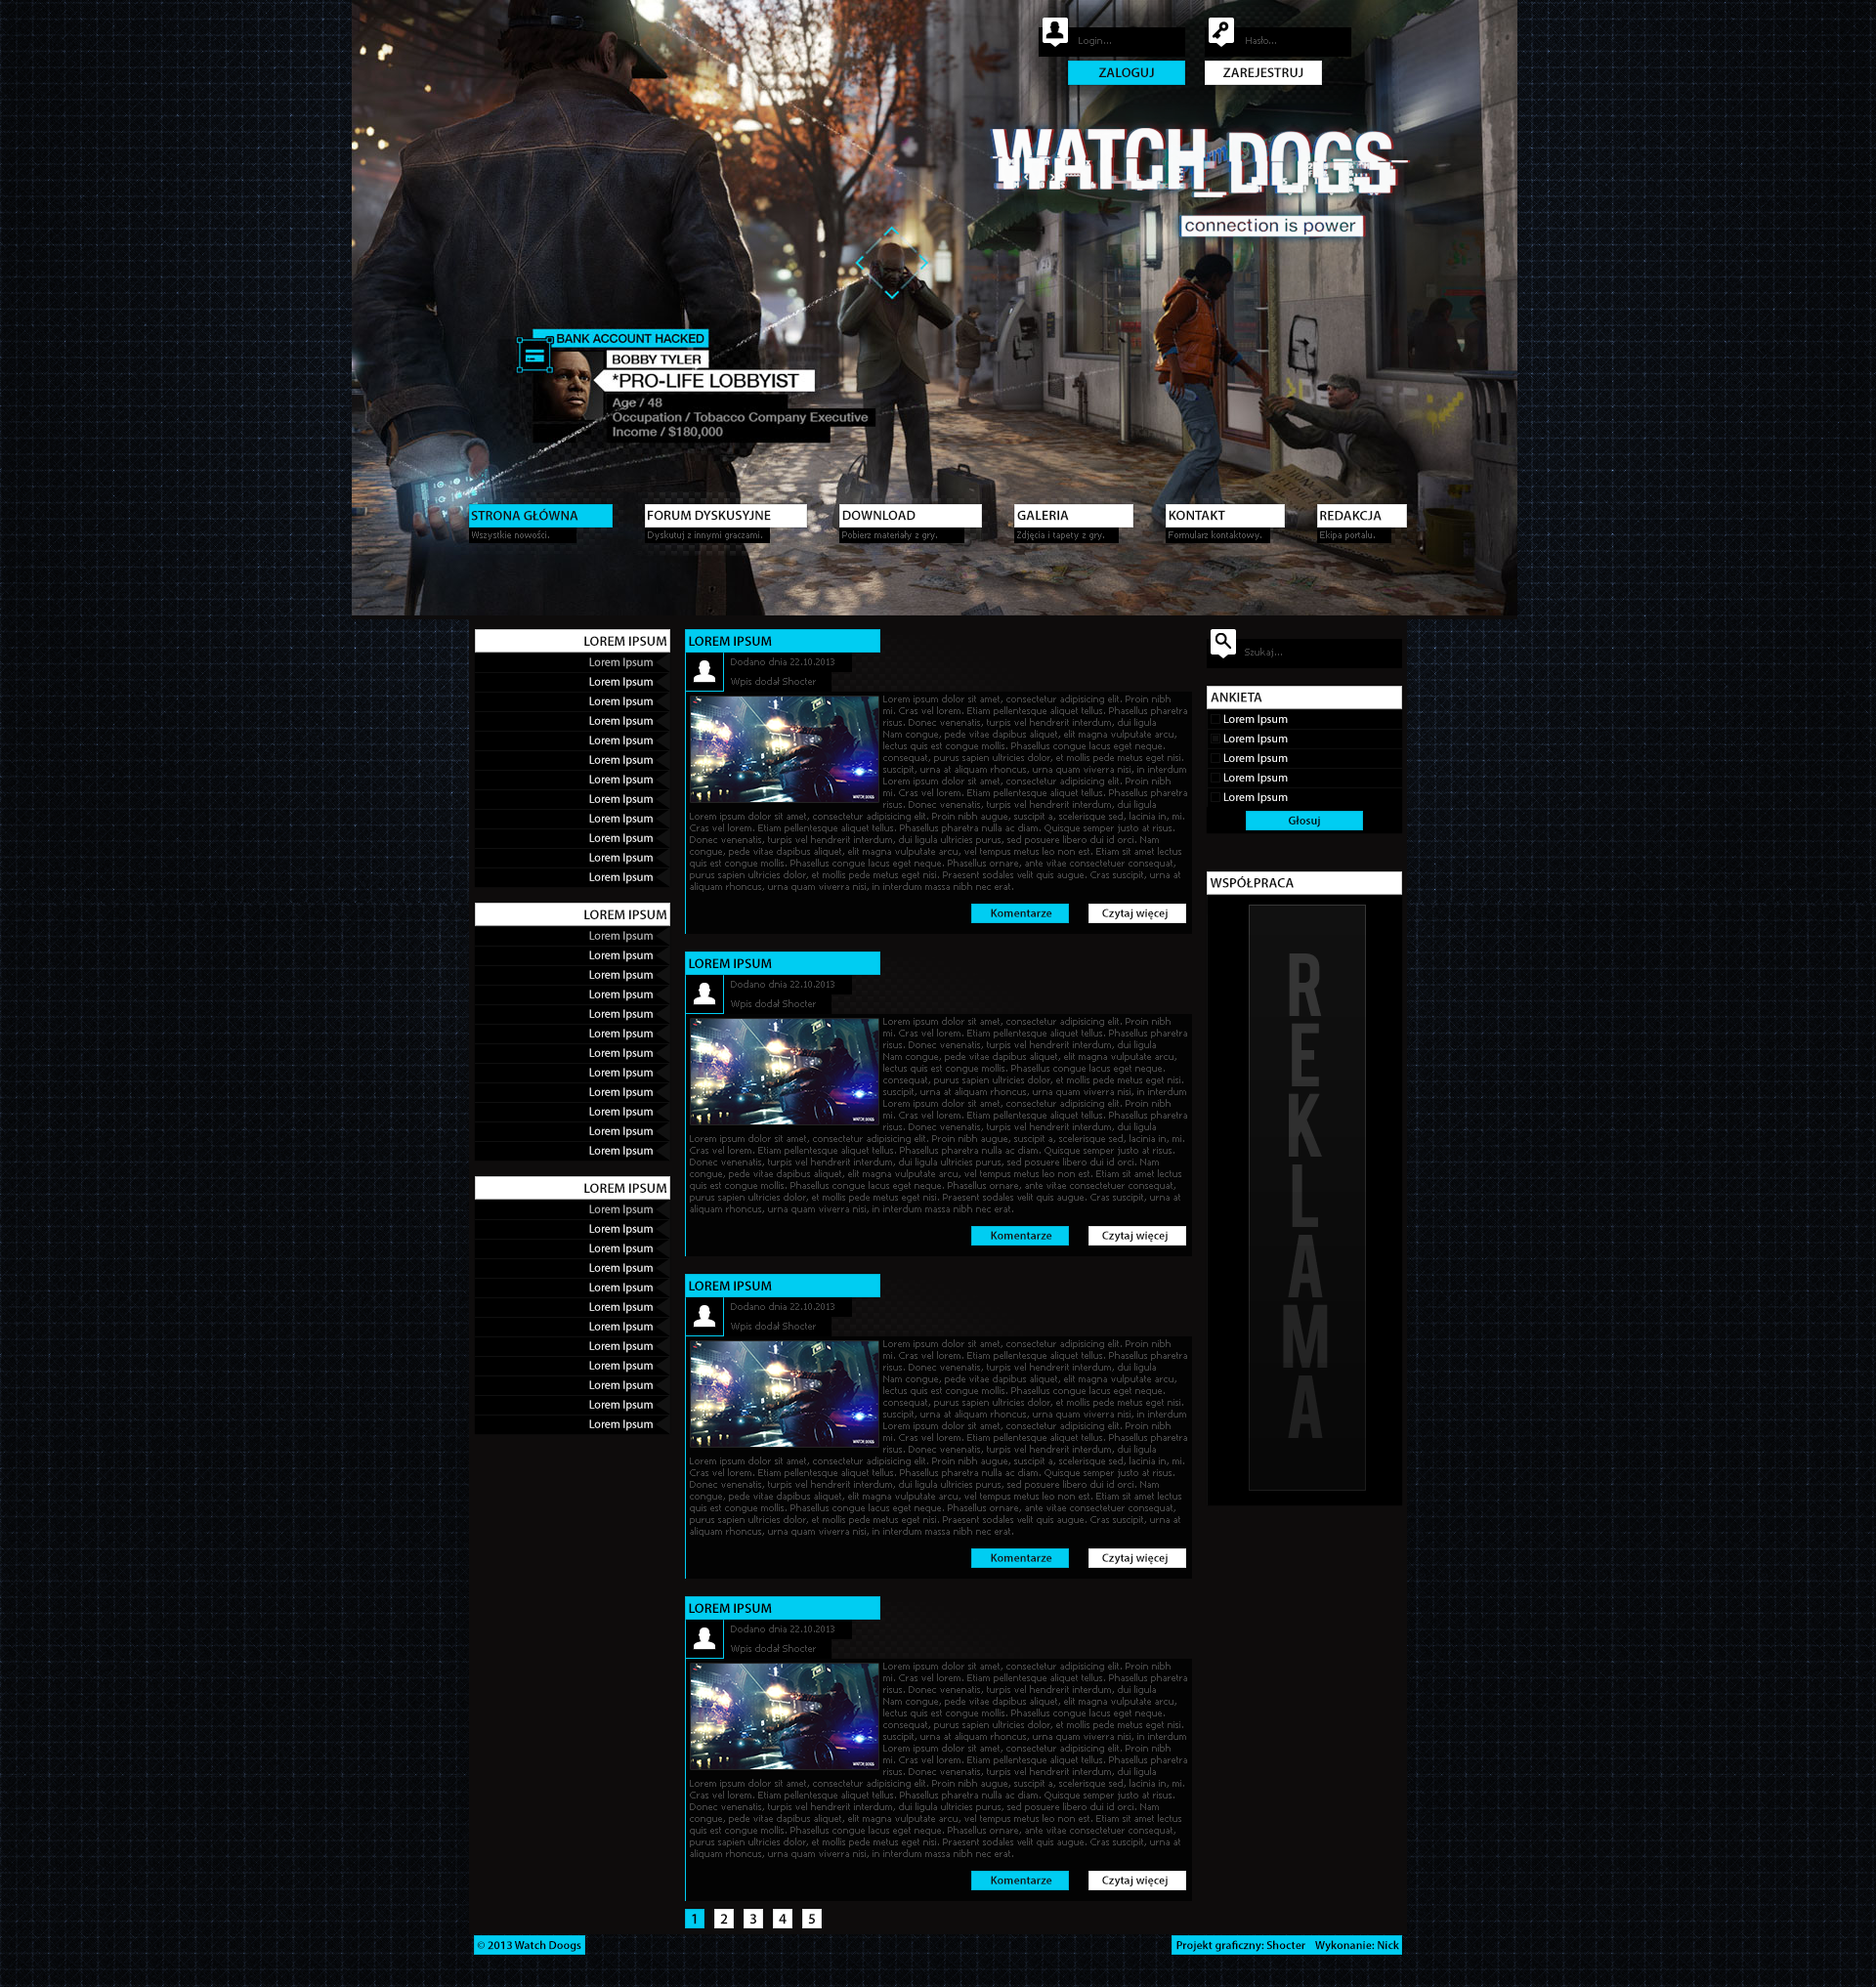 watch_dogs_layout_by_shocter-d6rg6mu.png